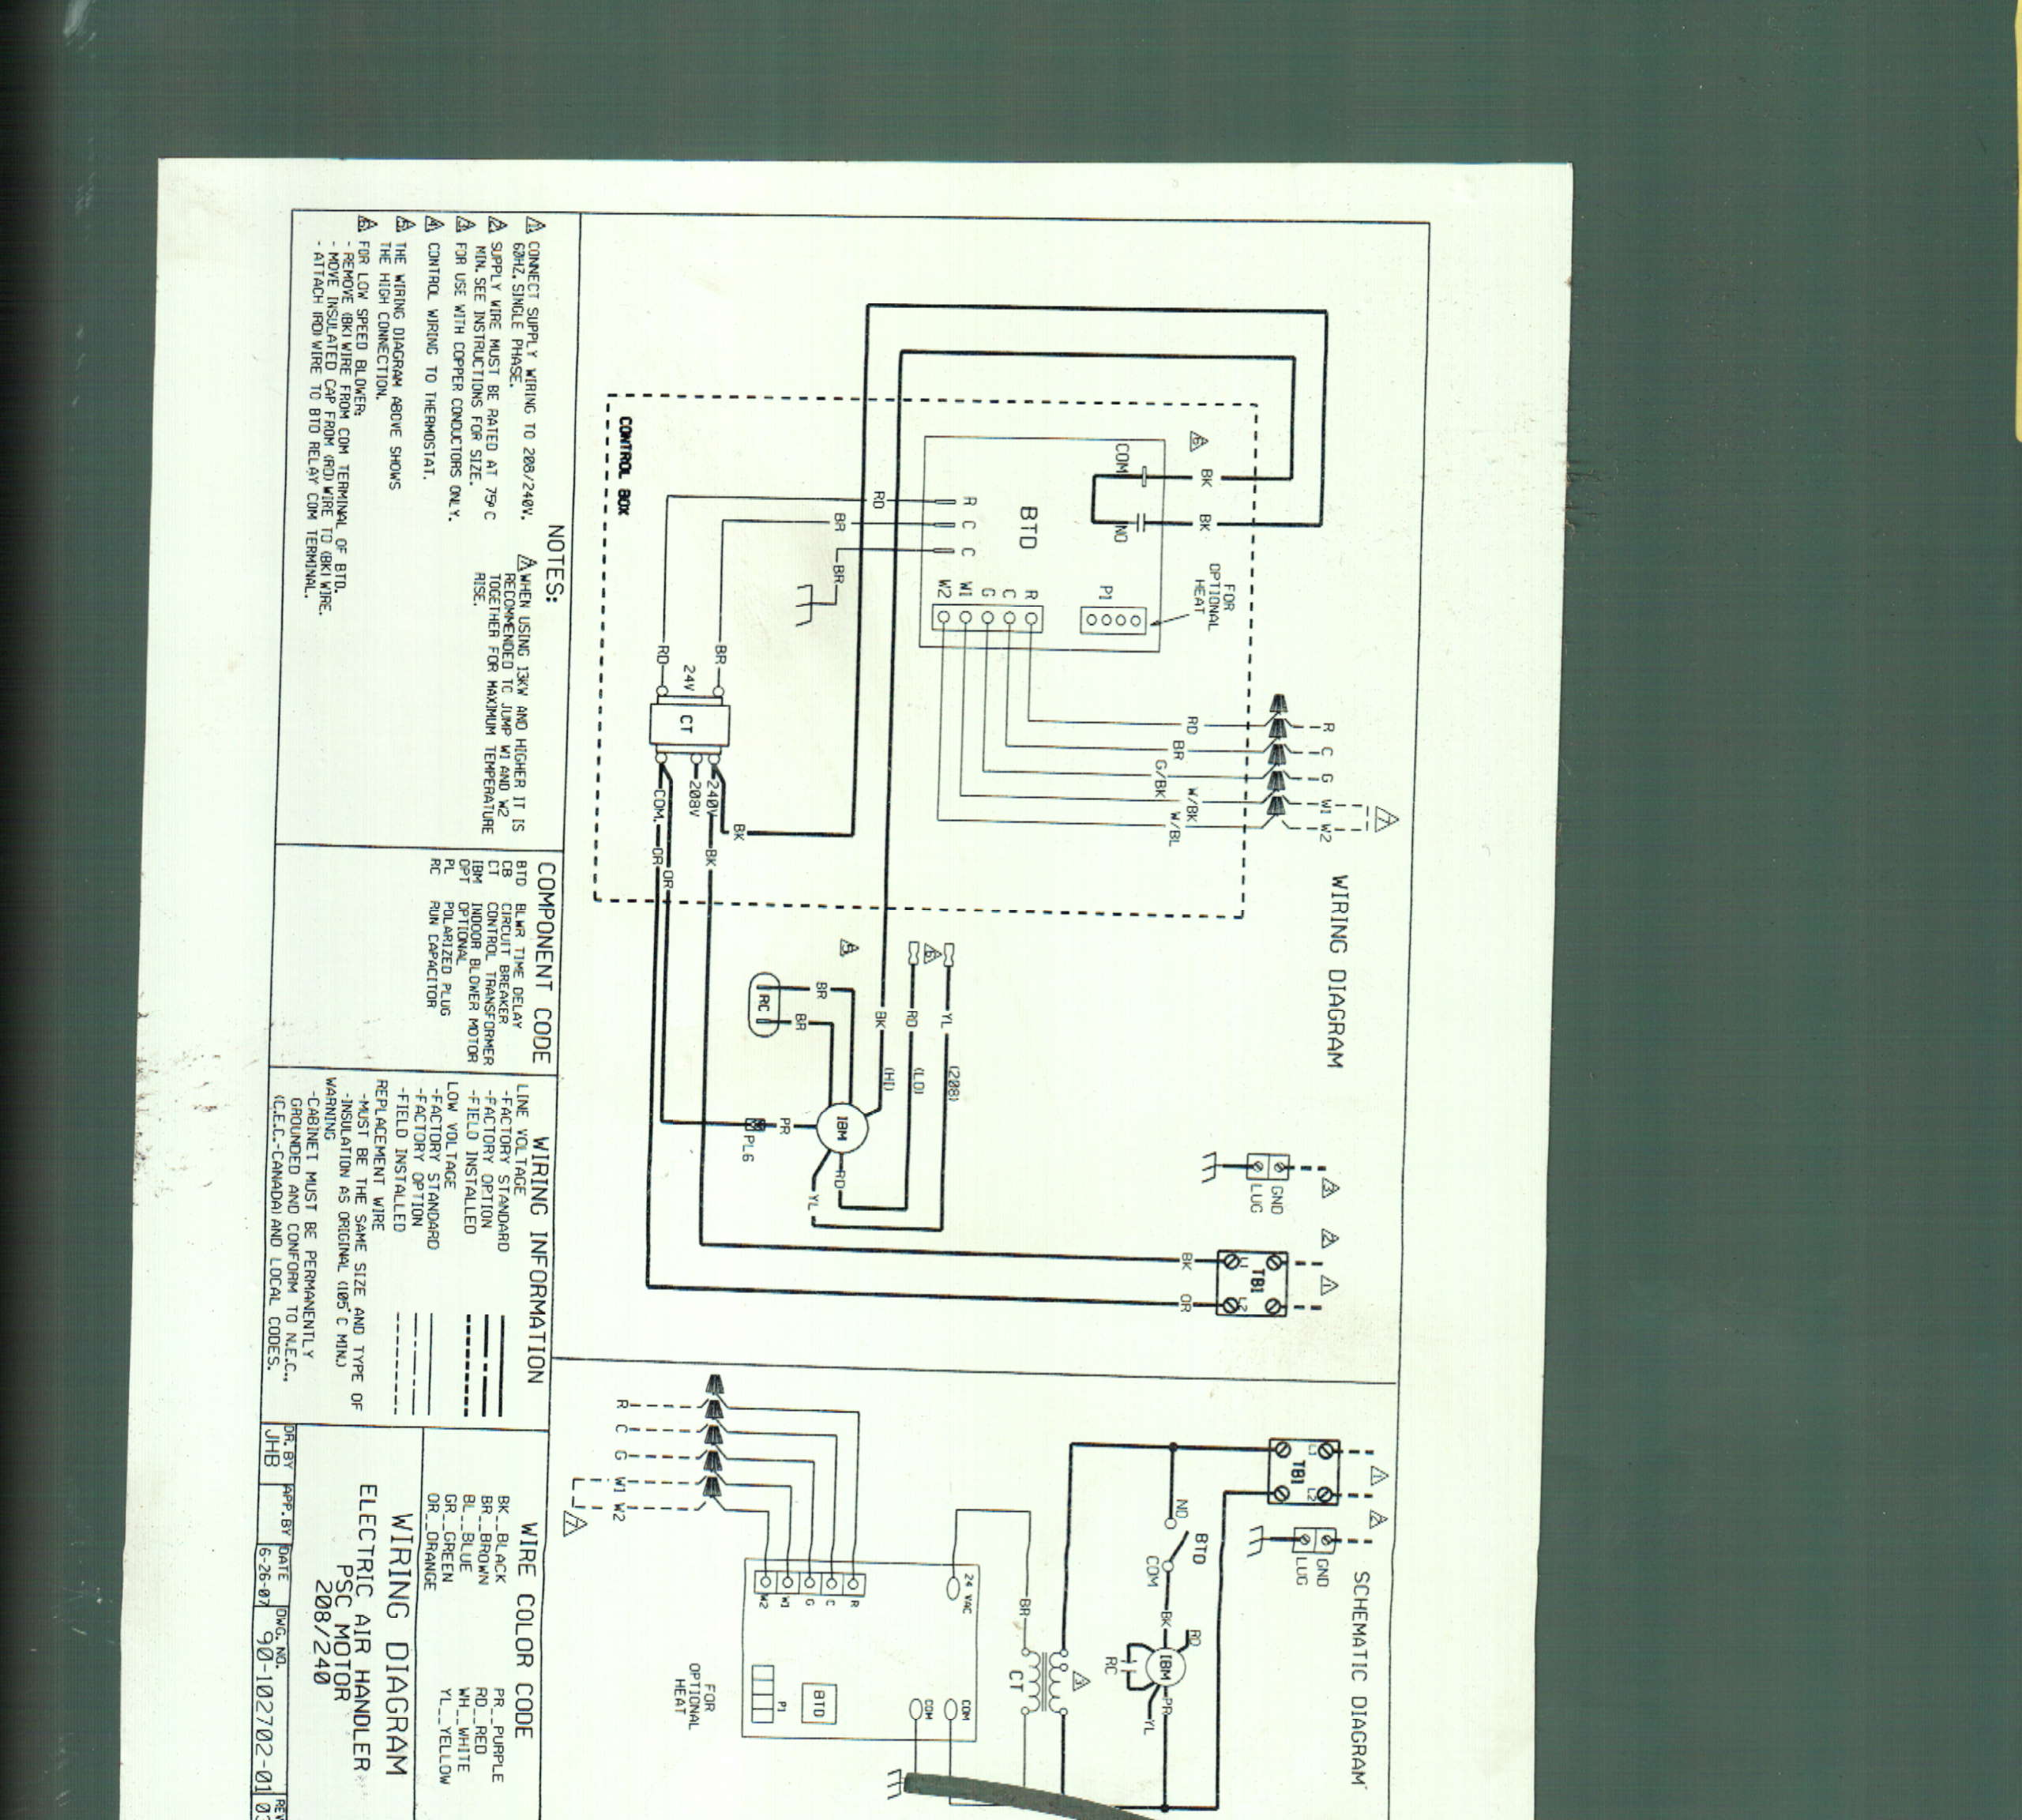 thermostat wiring diagram besides water switch thermostat get free image about wiring diagram